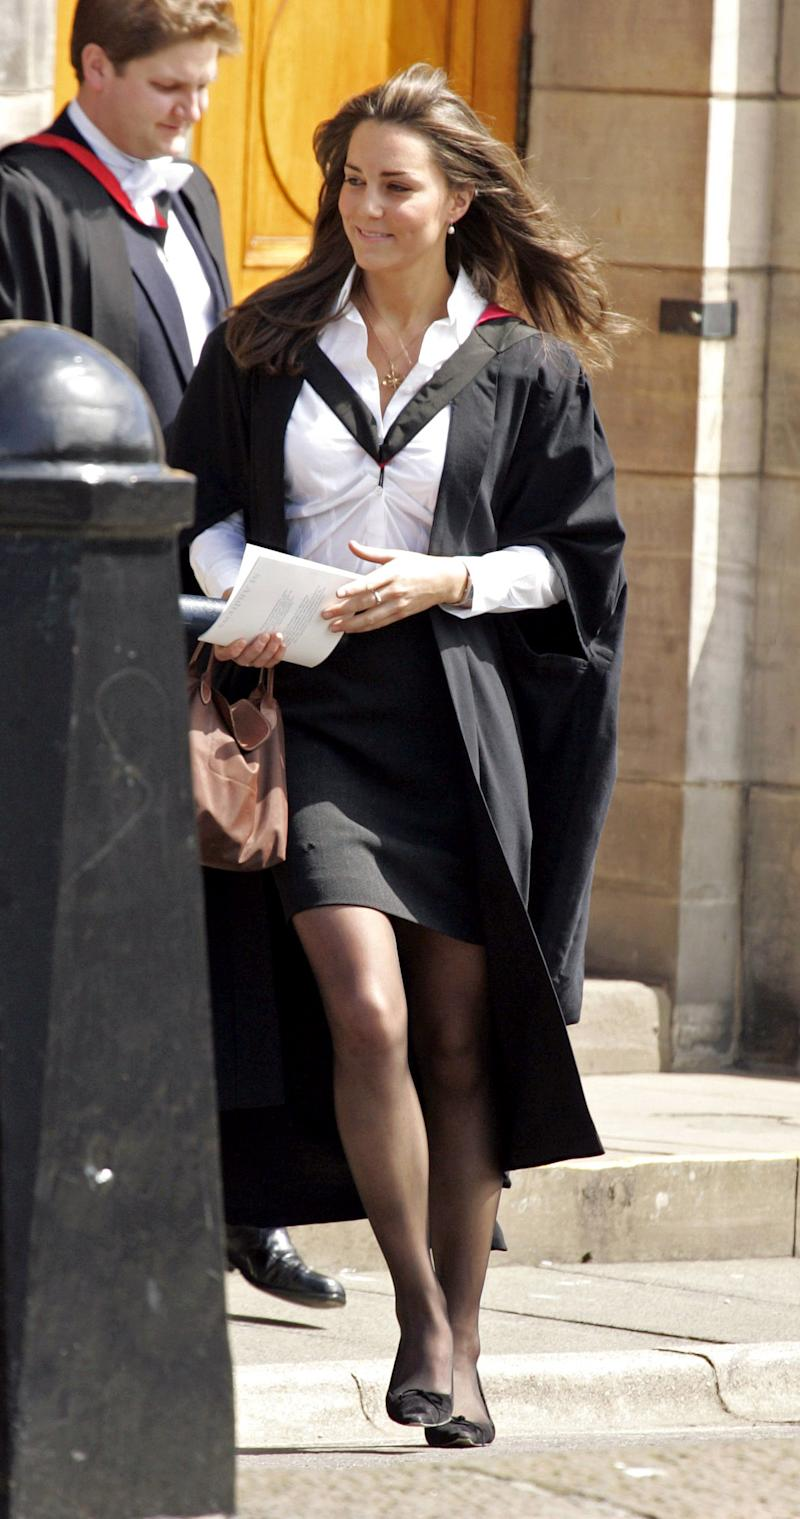 Kate Middleton Graduation Ceremony At The University Of St Andrews In Scotland. . (Photo by Mark Cuthbert/UK Press via Getty Images)